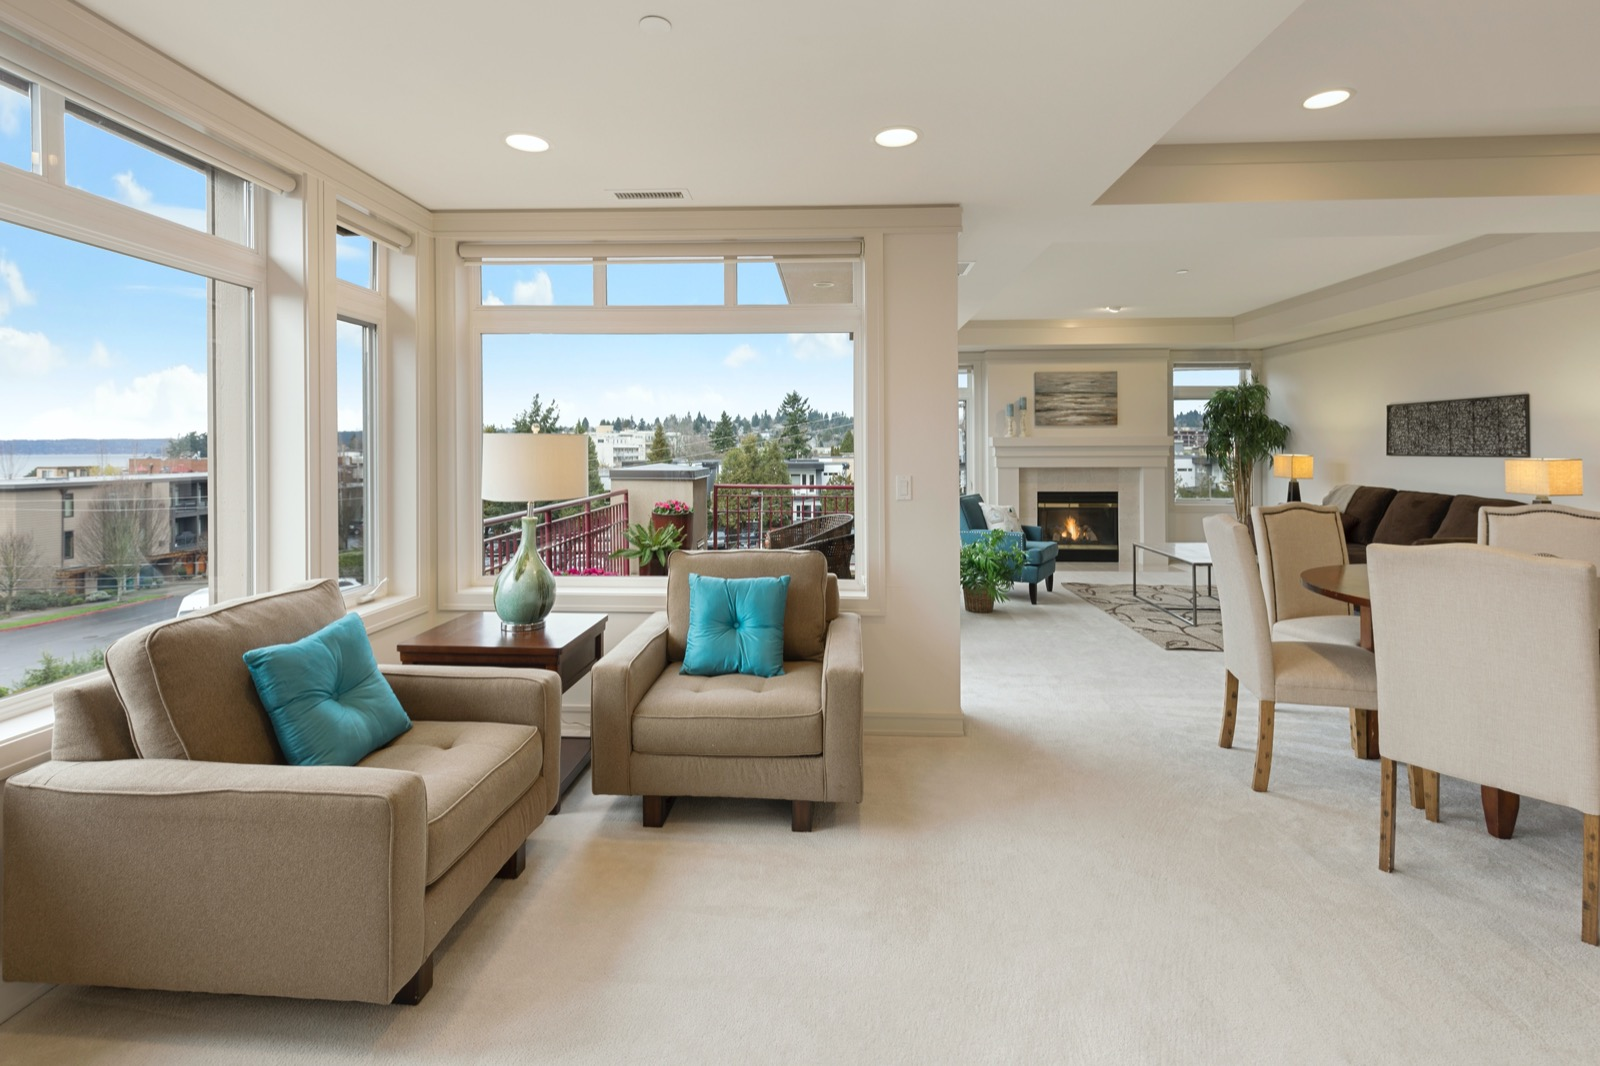 How to Stand Out as a Real Estate Photographer (3 Tips)